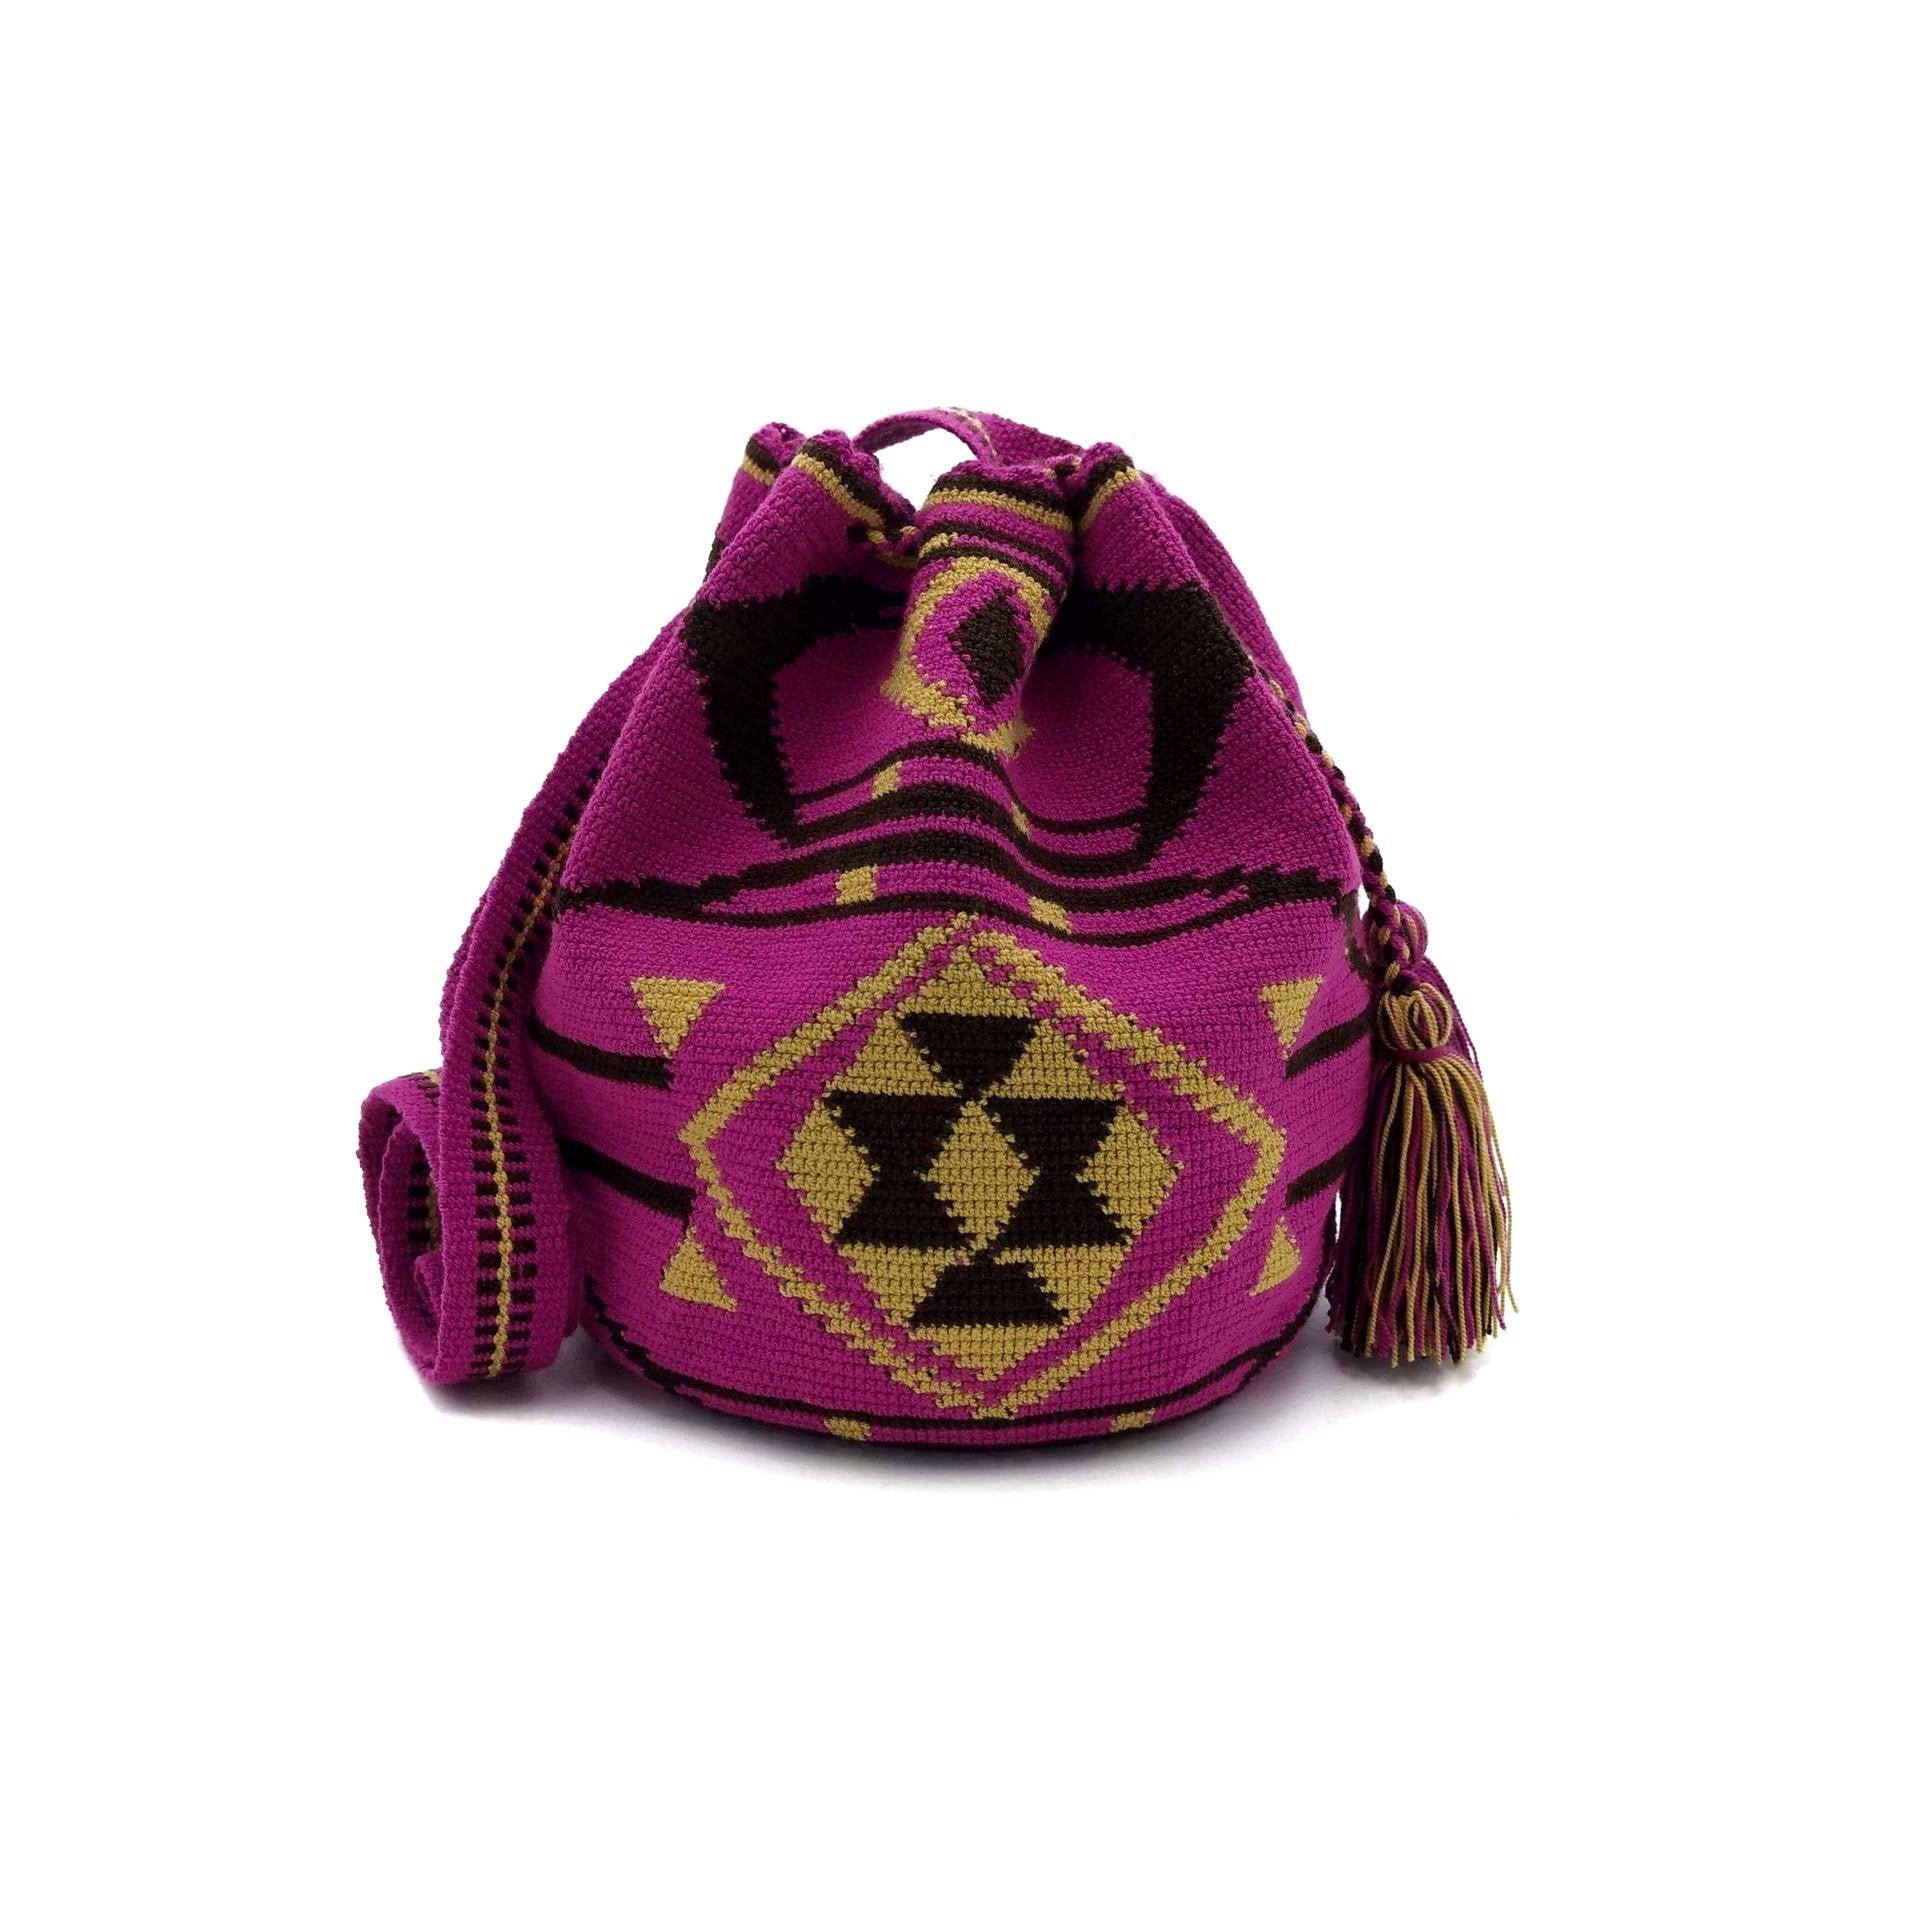 Front view of one-Thread Wayuu Mochila Bag with a beautiful pattern in colors: Red-Violet, Light-Brown, and Brown.